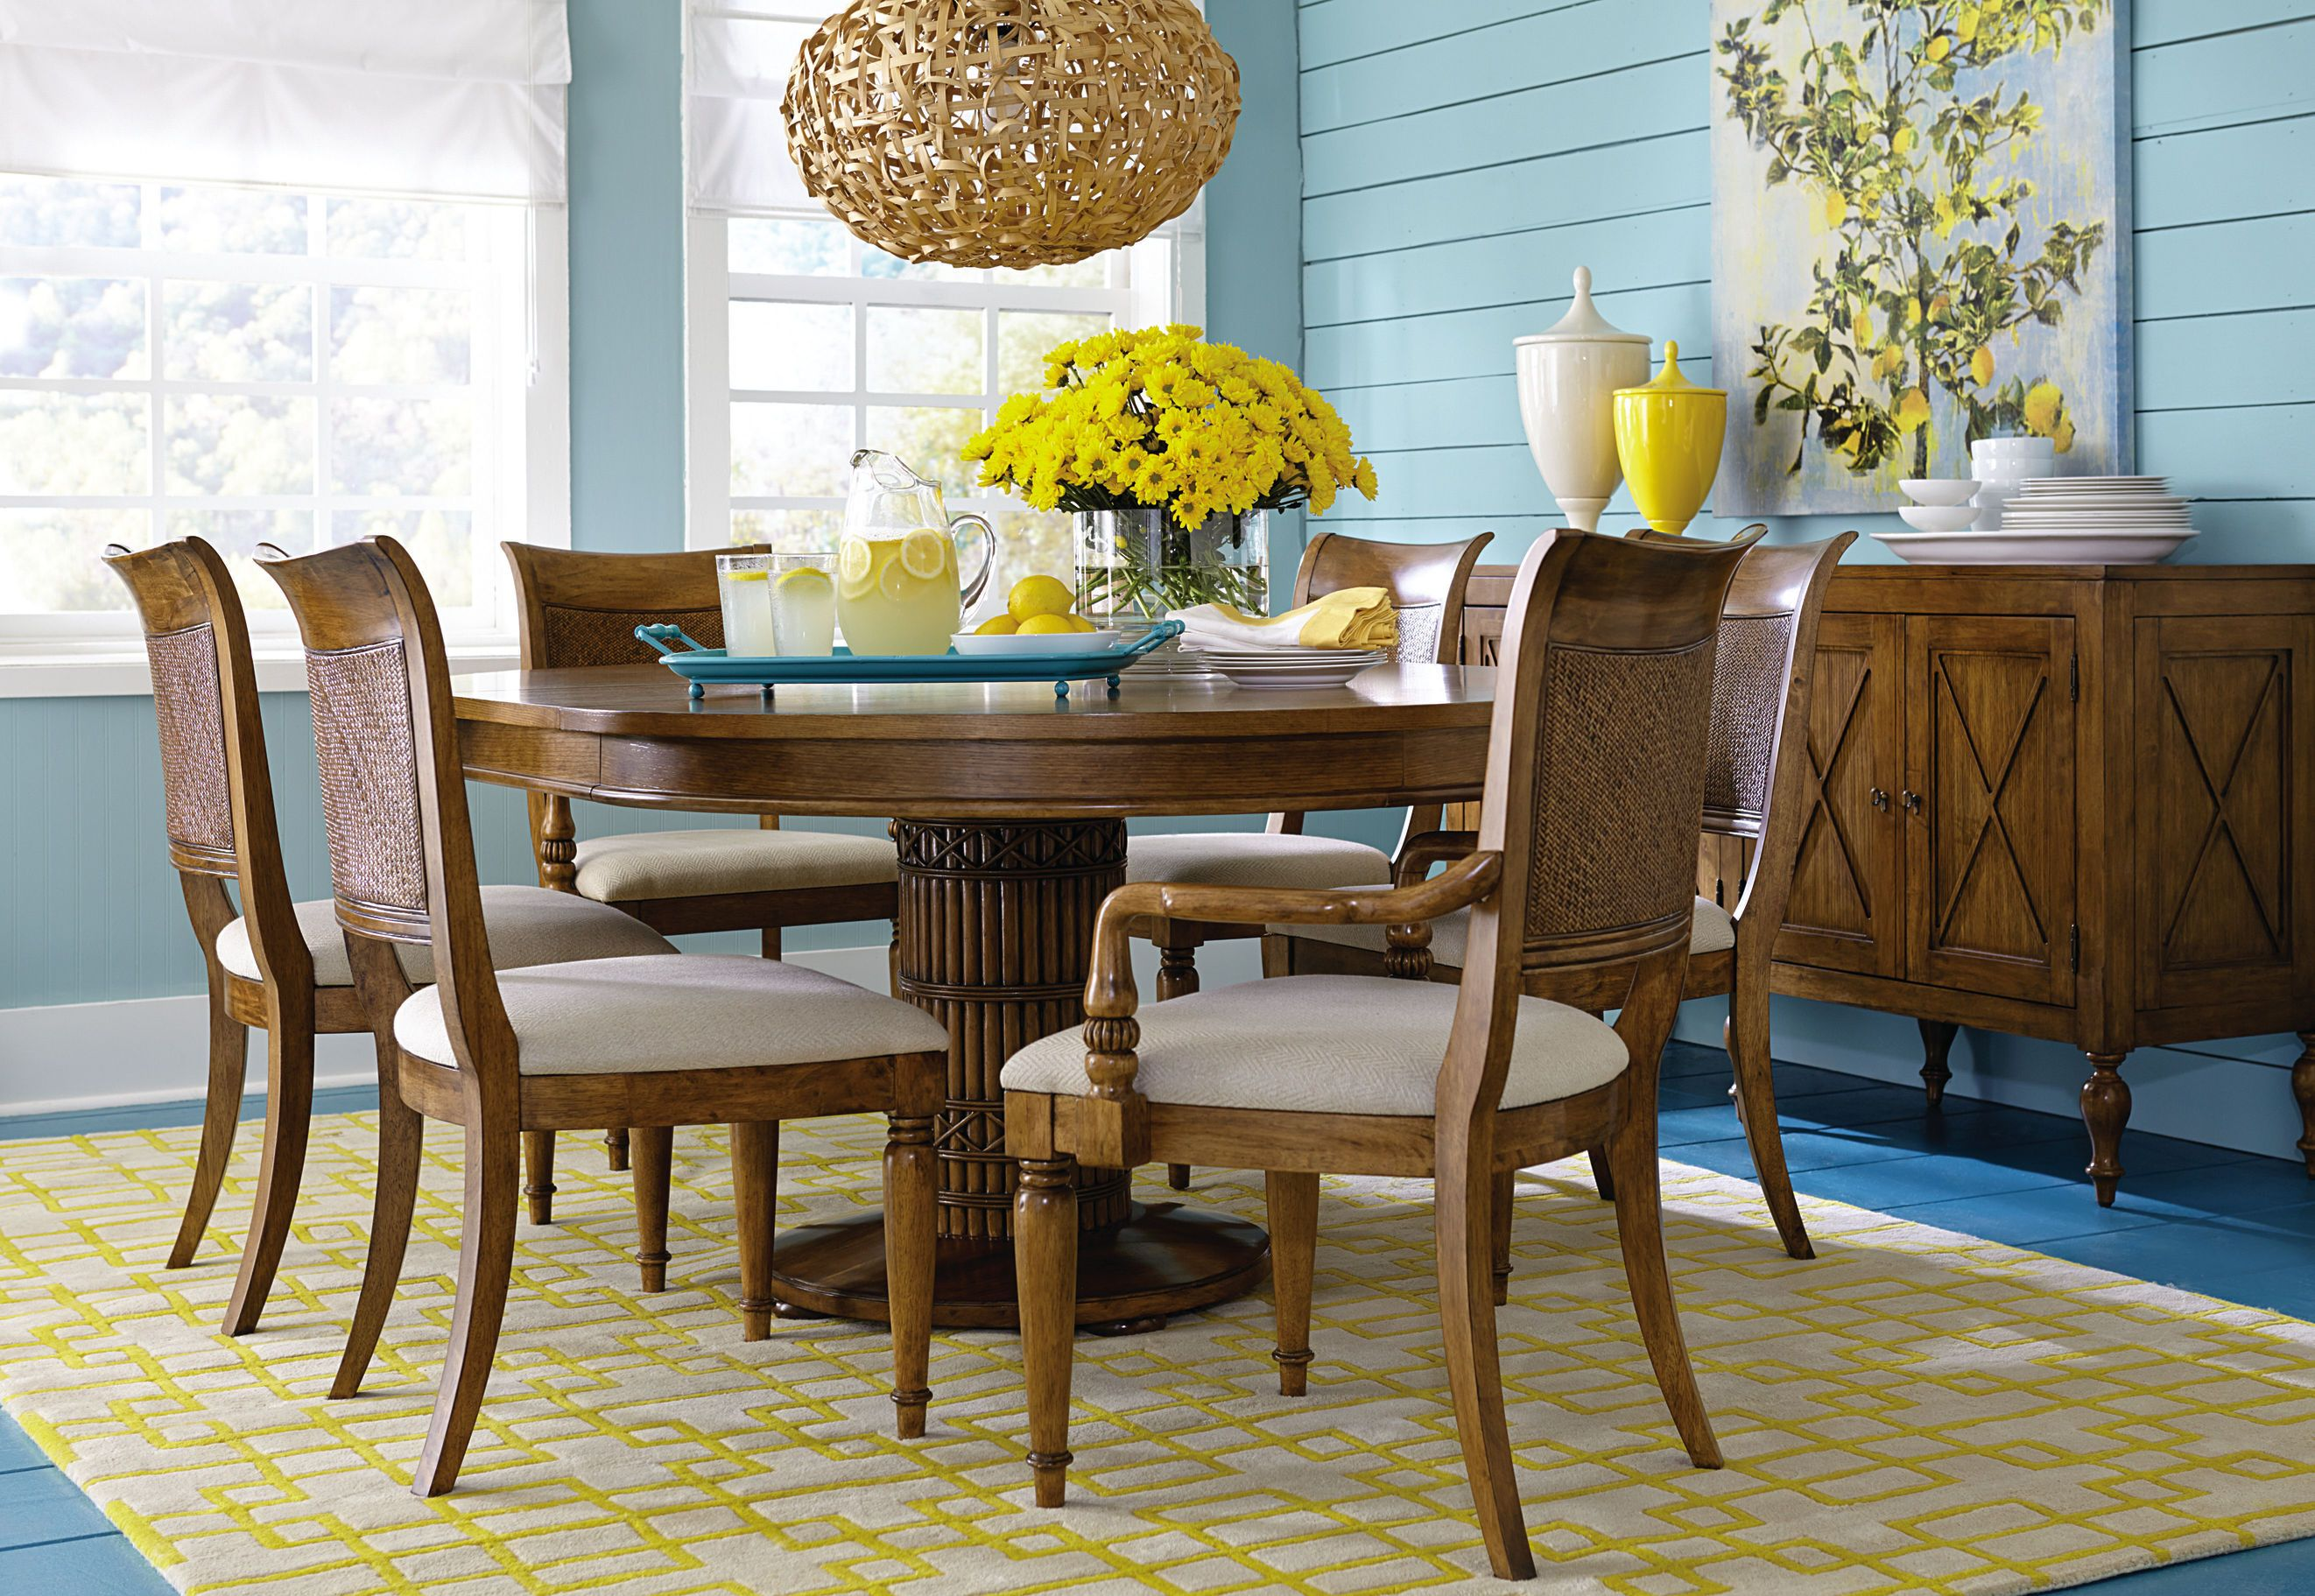 Dining Room table made by Bassett Furniture. Shop this